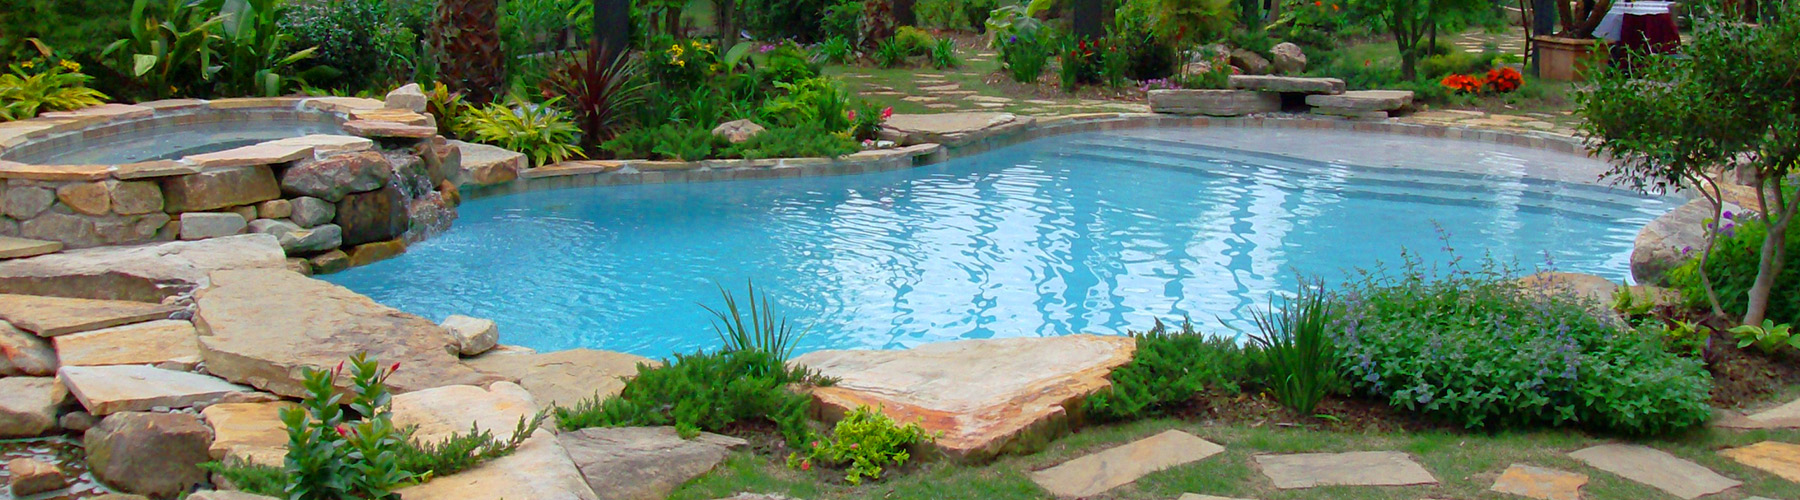 Best swimming pool builders acm pools spas acm pools for Top 10 swimming pools